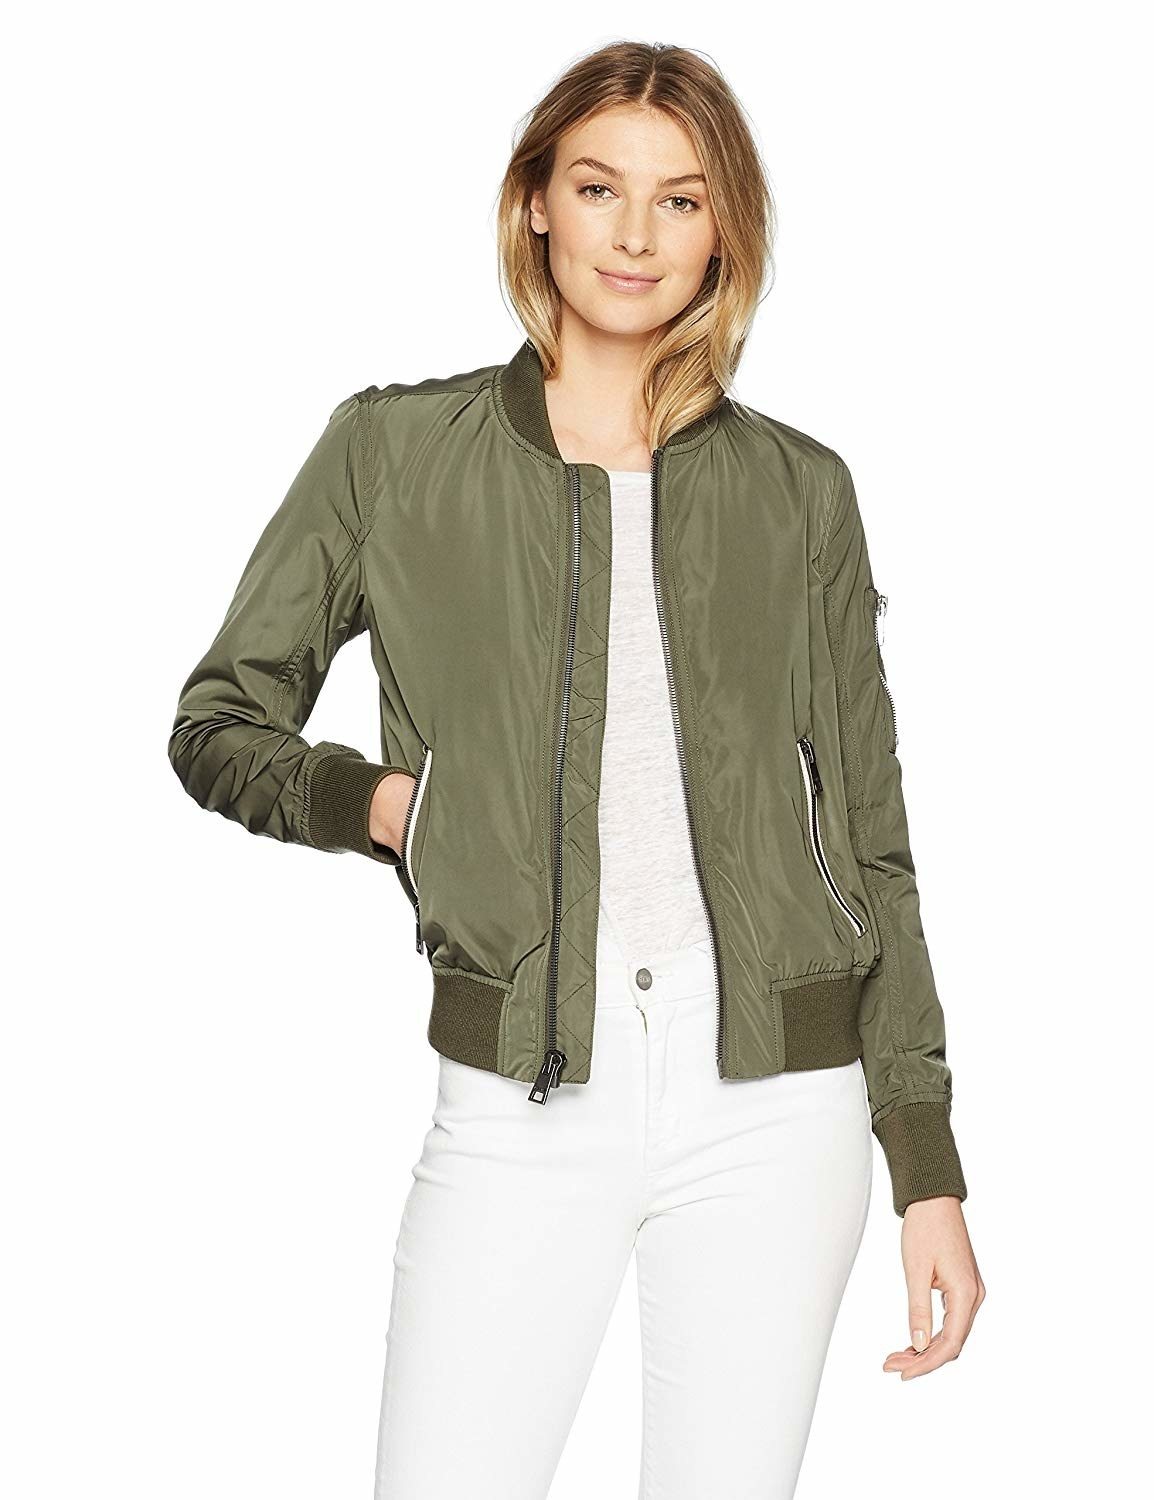 Model wearing bomber jacket with contrast zippers on side pockets and elastic around the neck, sleeves, and waist